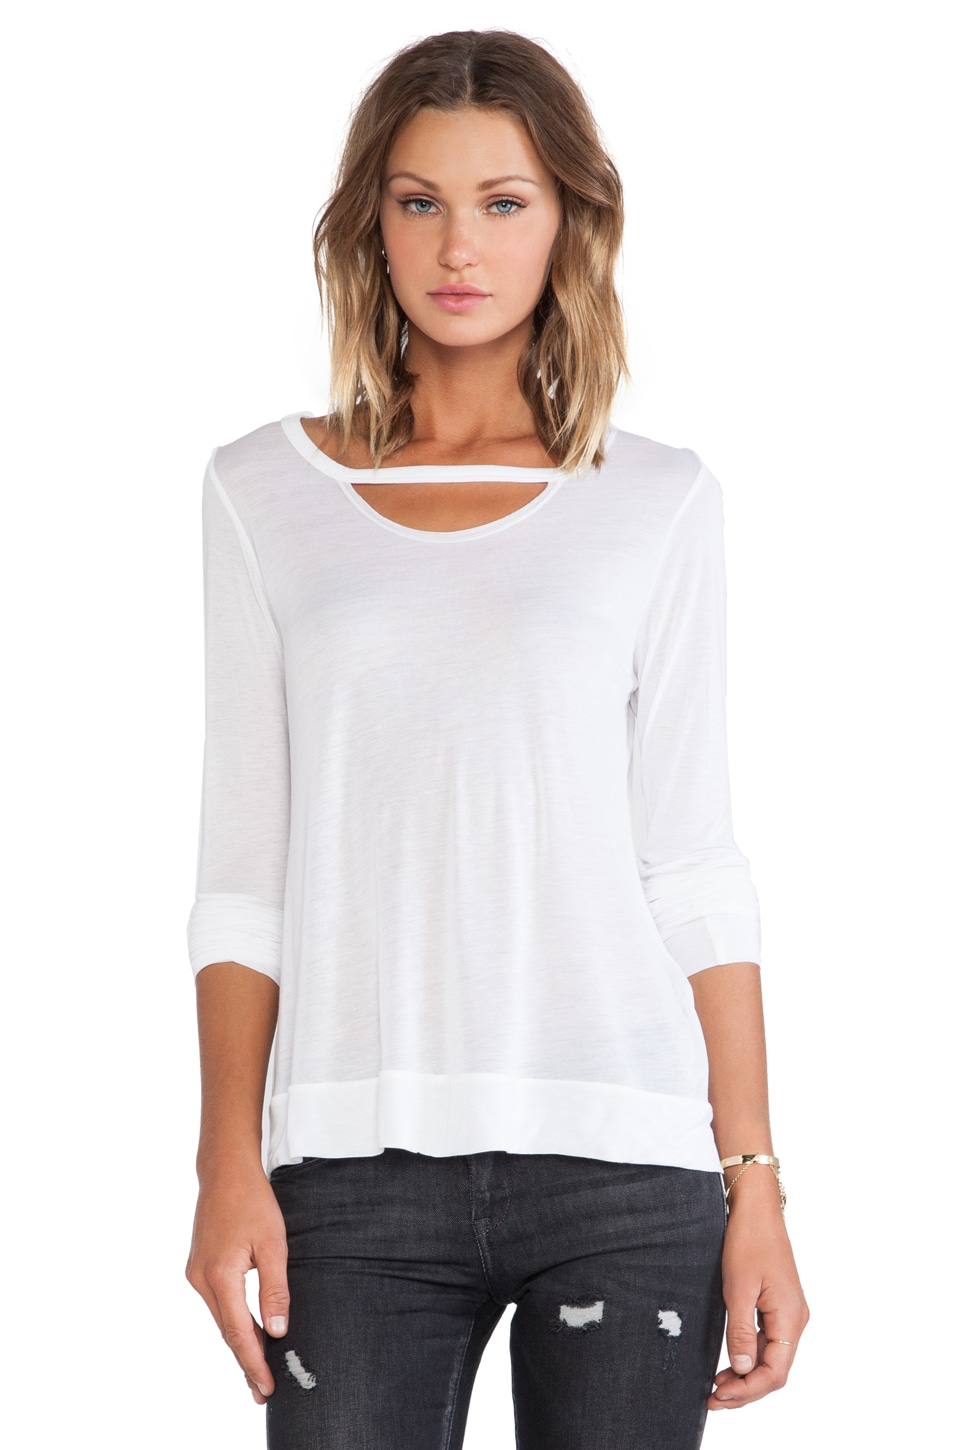 Michael Lauren Roger Holes Long Sleeve Tee in White